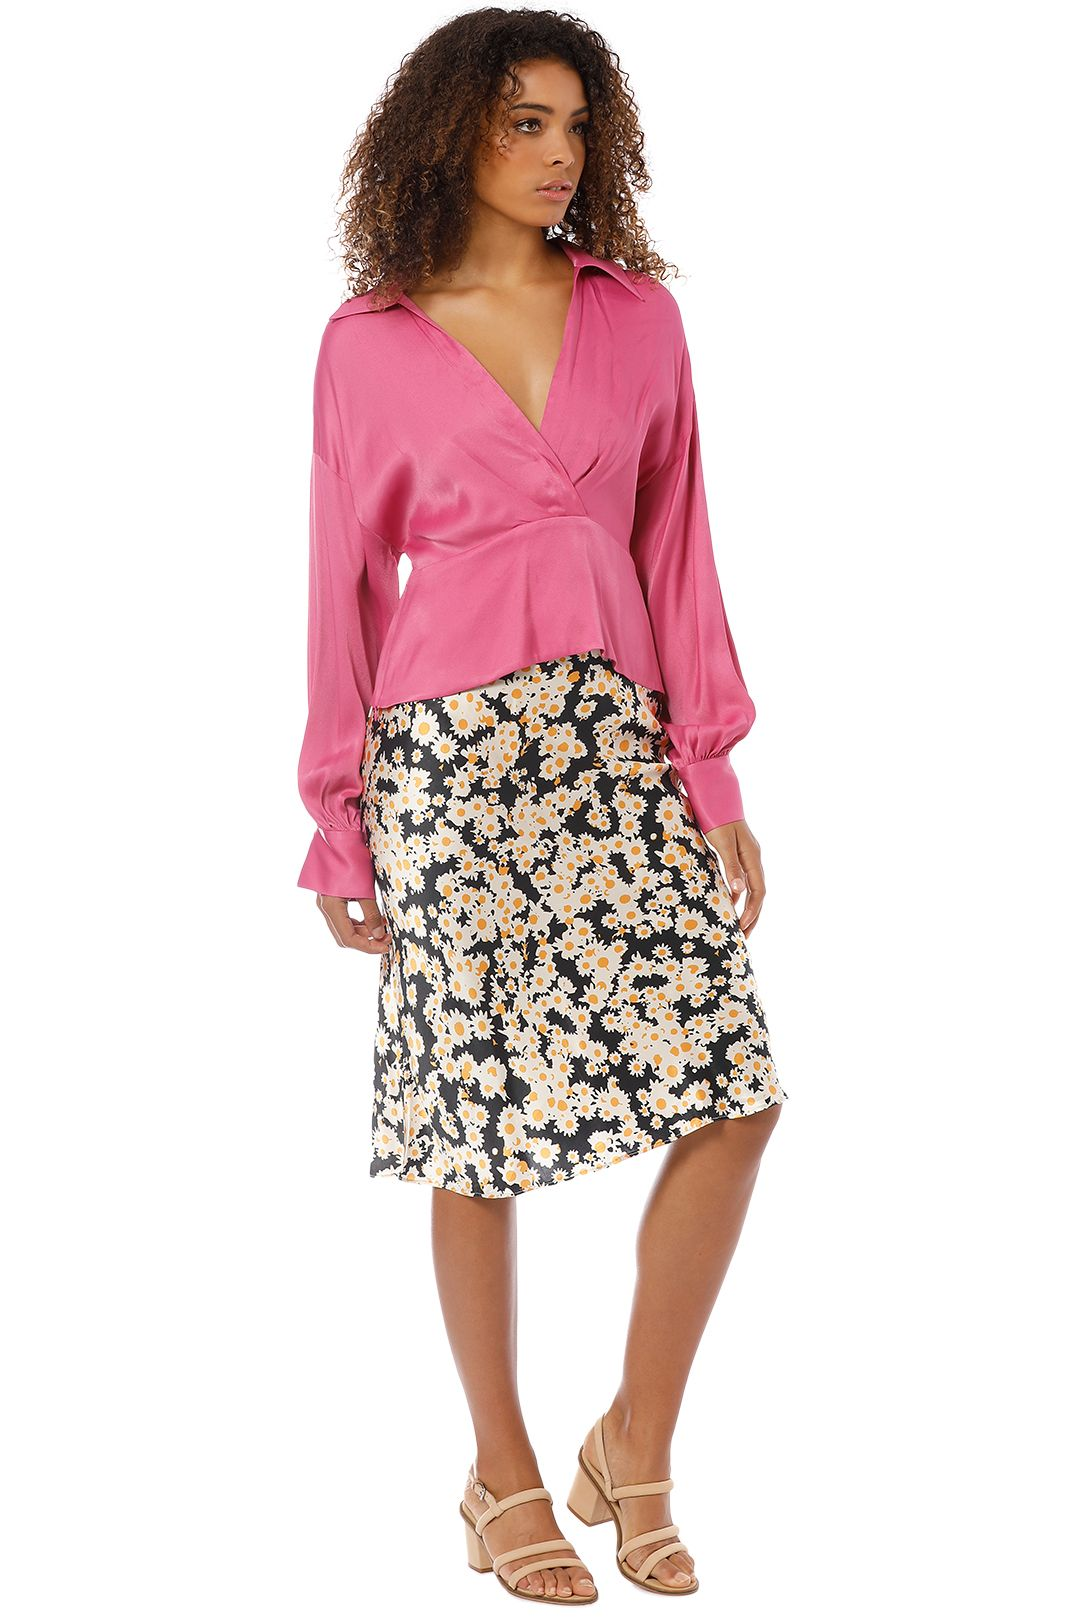 Manning Cartell - Status Update Blouse - Pink - Side